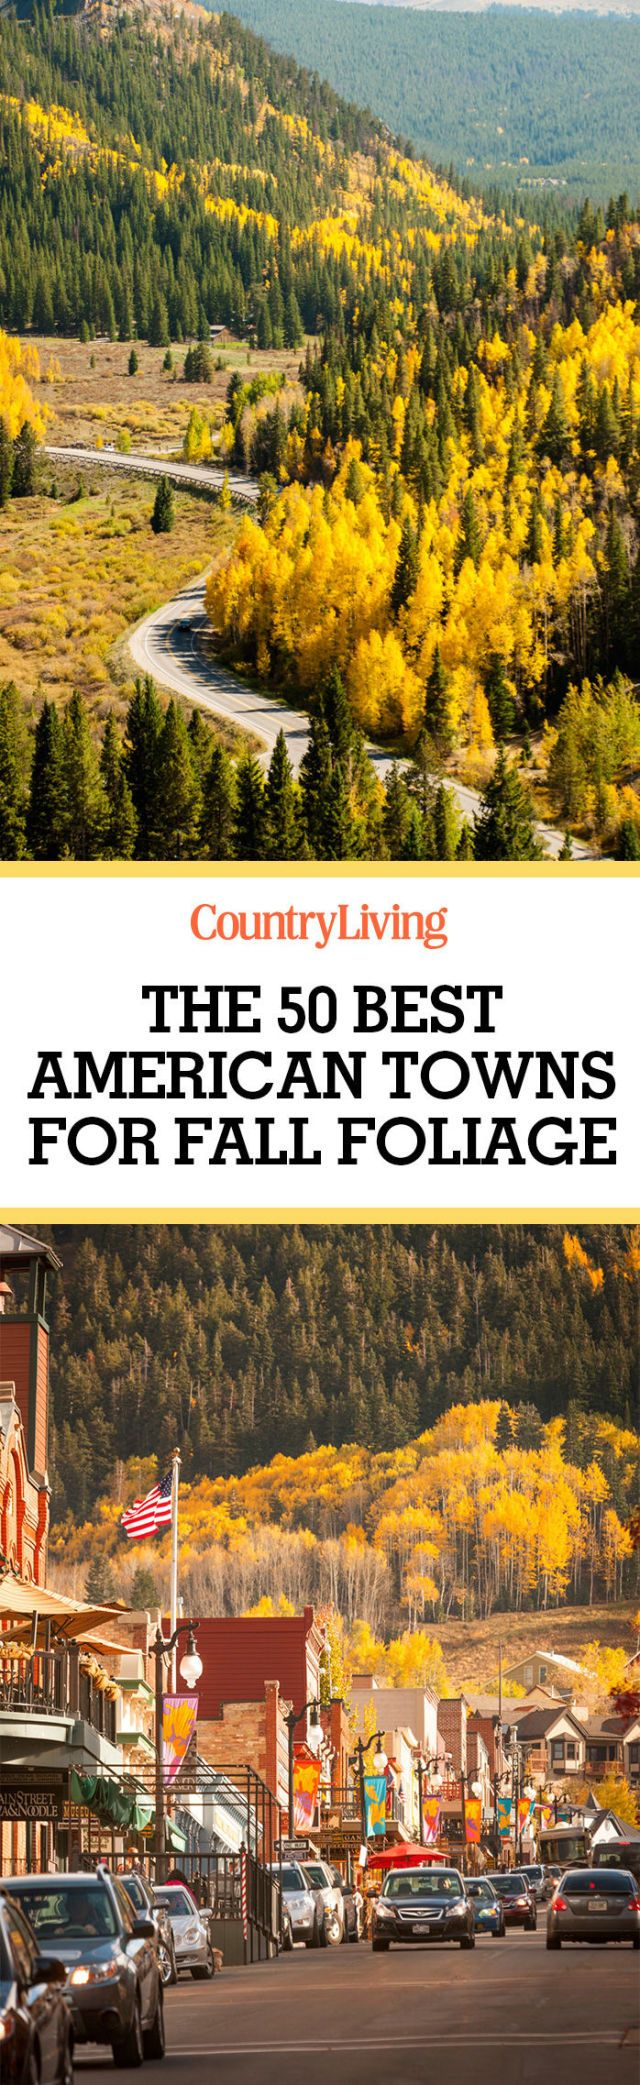 This leaf peeping season, escape the crowds to discover vibrant fall colors at these hidden gems.  http://www.msn.com/en-us/travel/tripideas/50-small-towns-across-america-with-the-most-beautiful-fall-foliage/ss-BBm35Jw?ocid=ems.msn.10122016#image=1